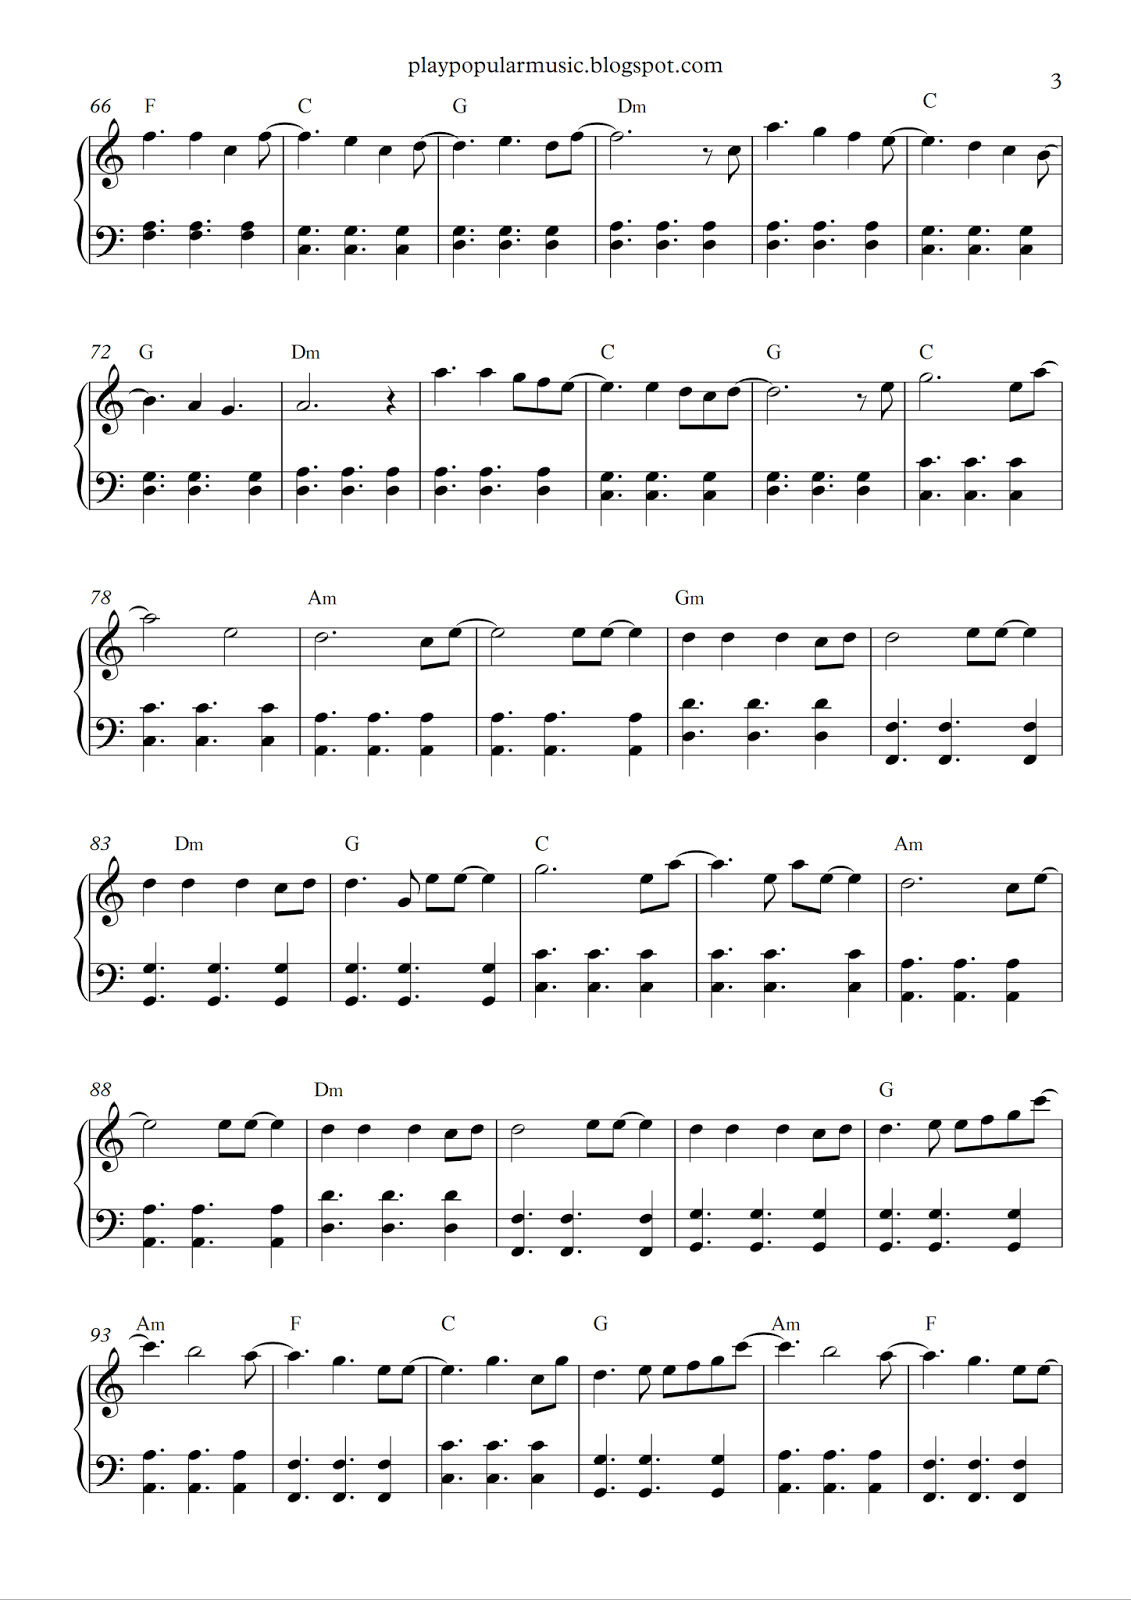 All Of Me Piano Sheet Music play popular music: all of me - john legend